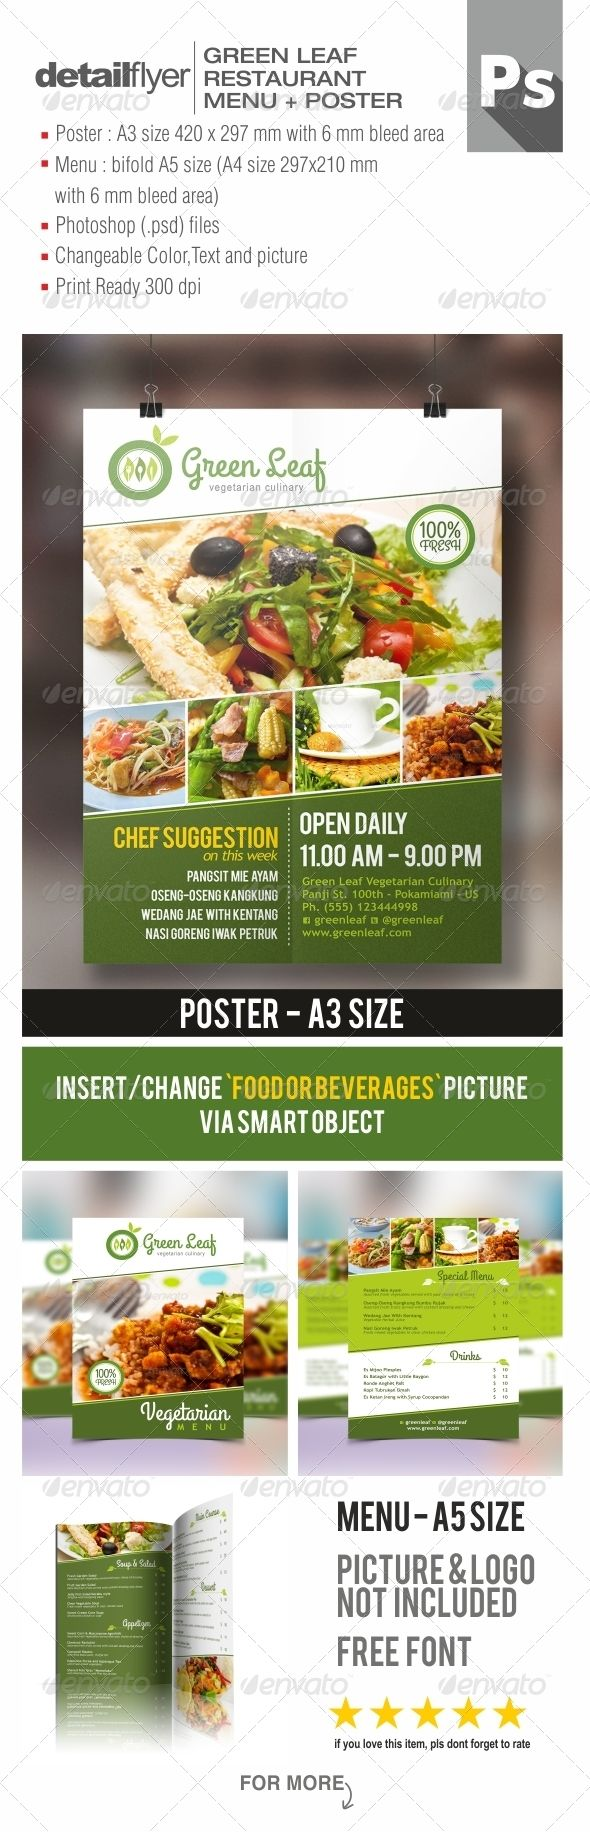 vegetarian restaurant menu poster pinterest psd templates